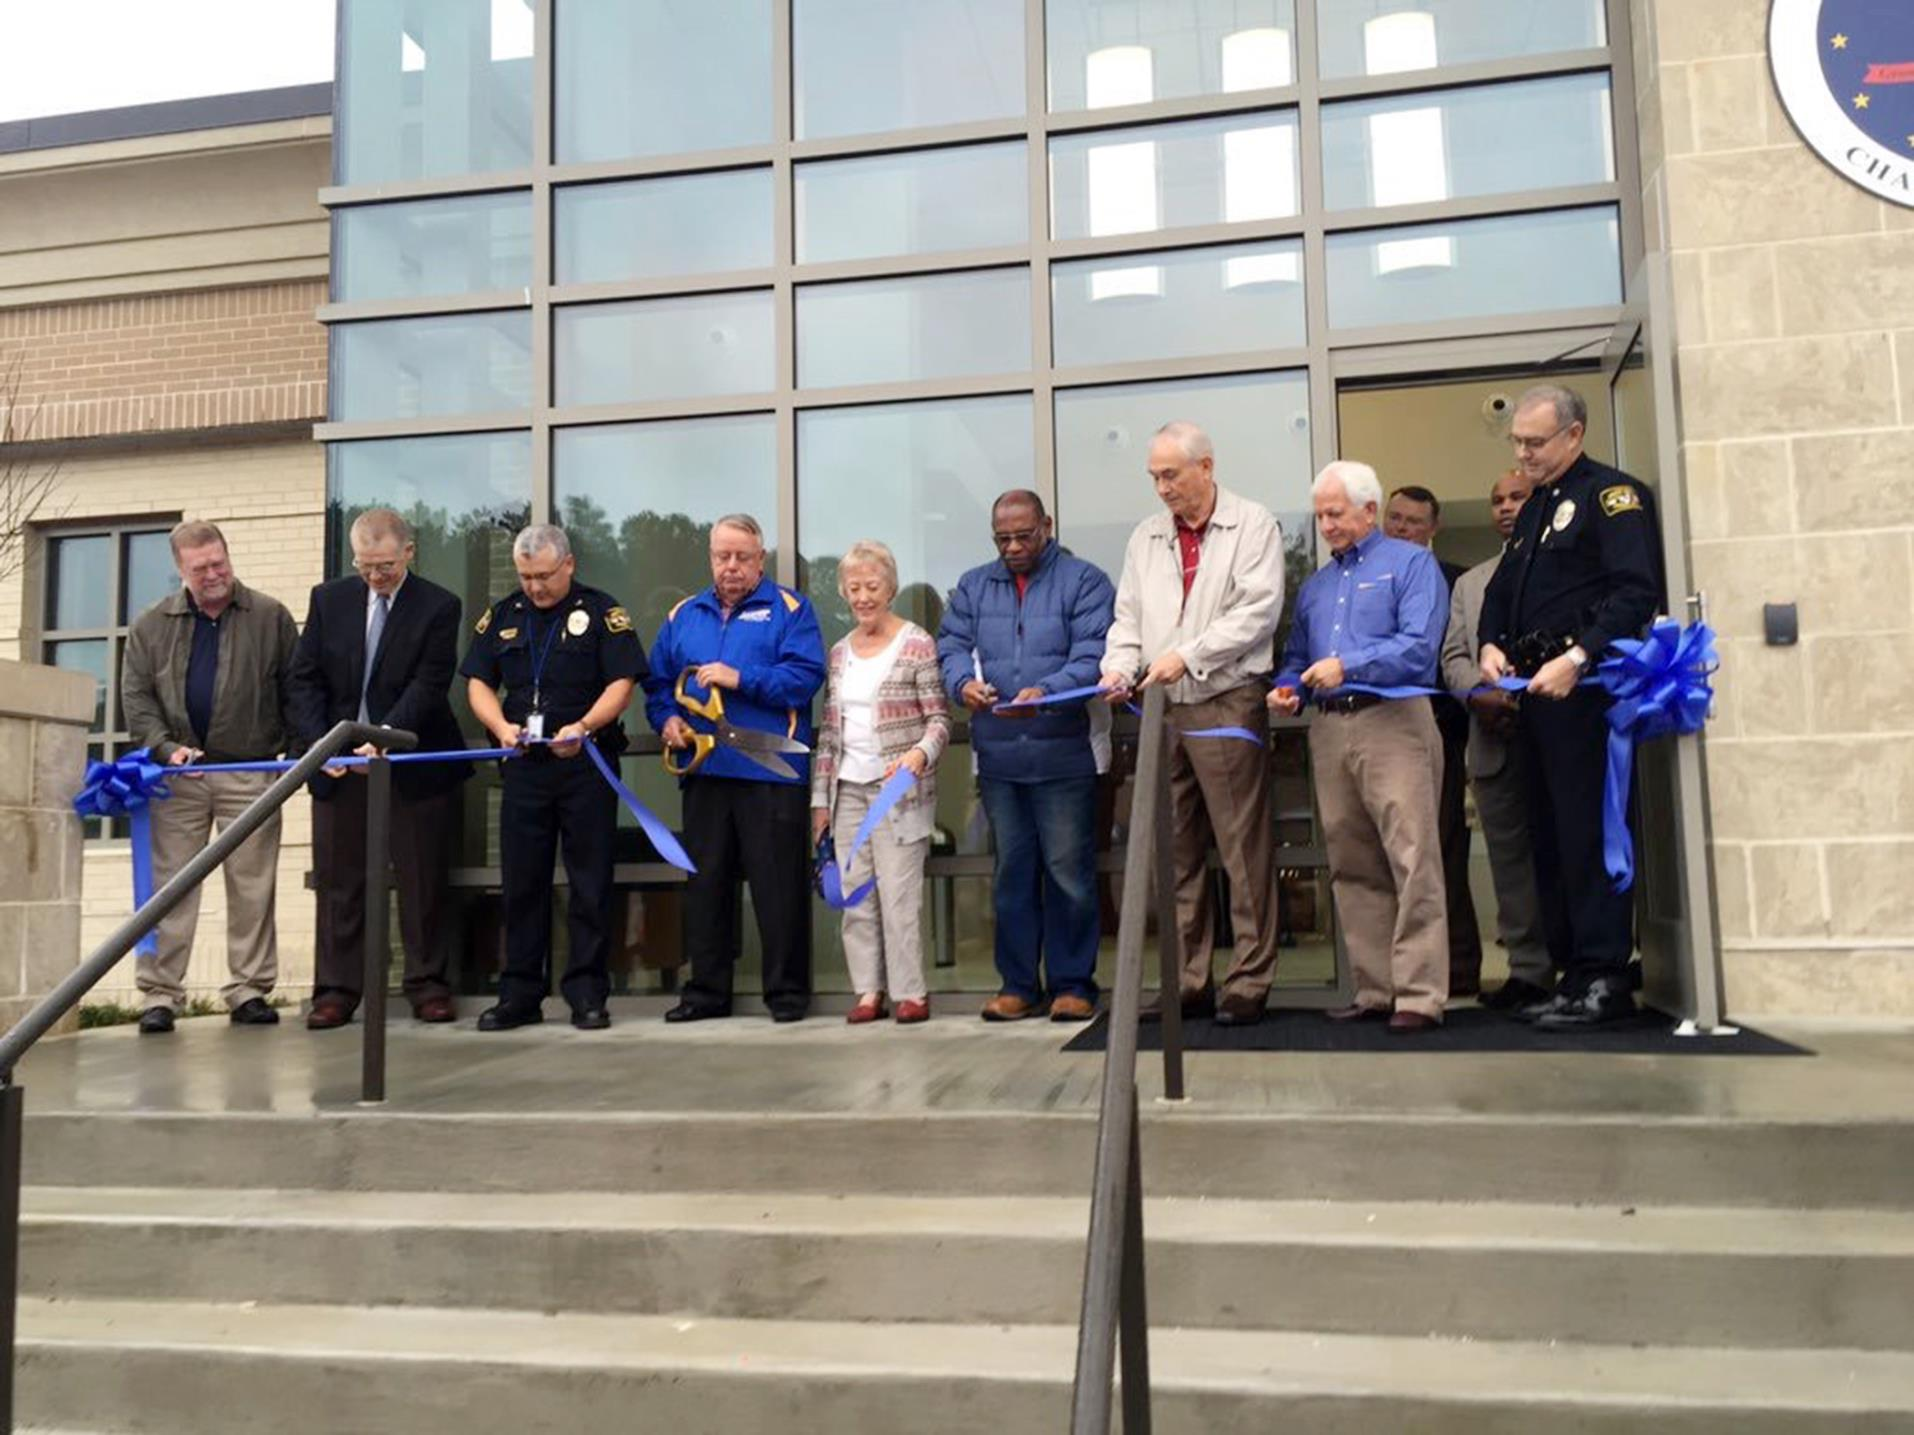 PD ribbon cutting